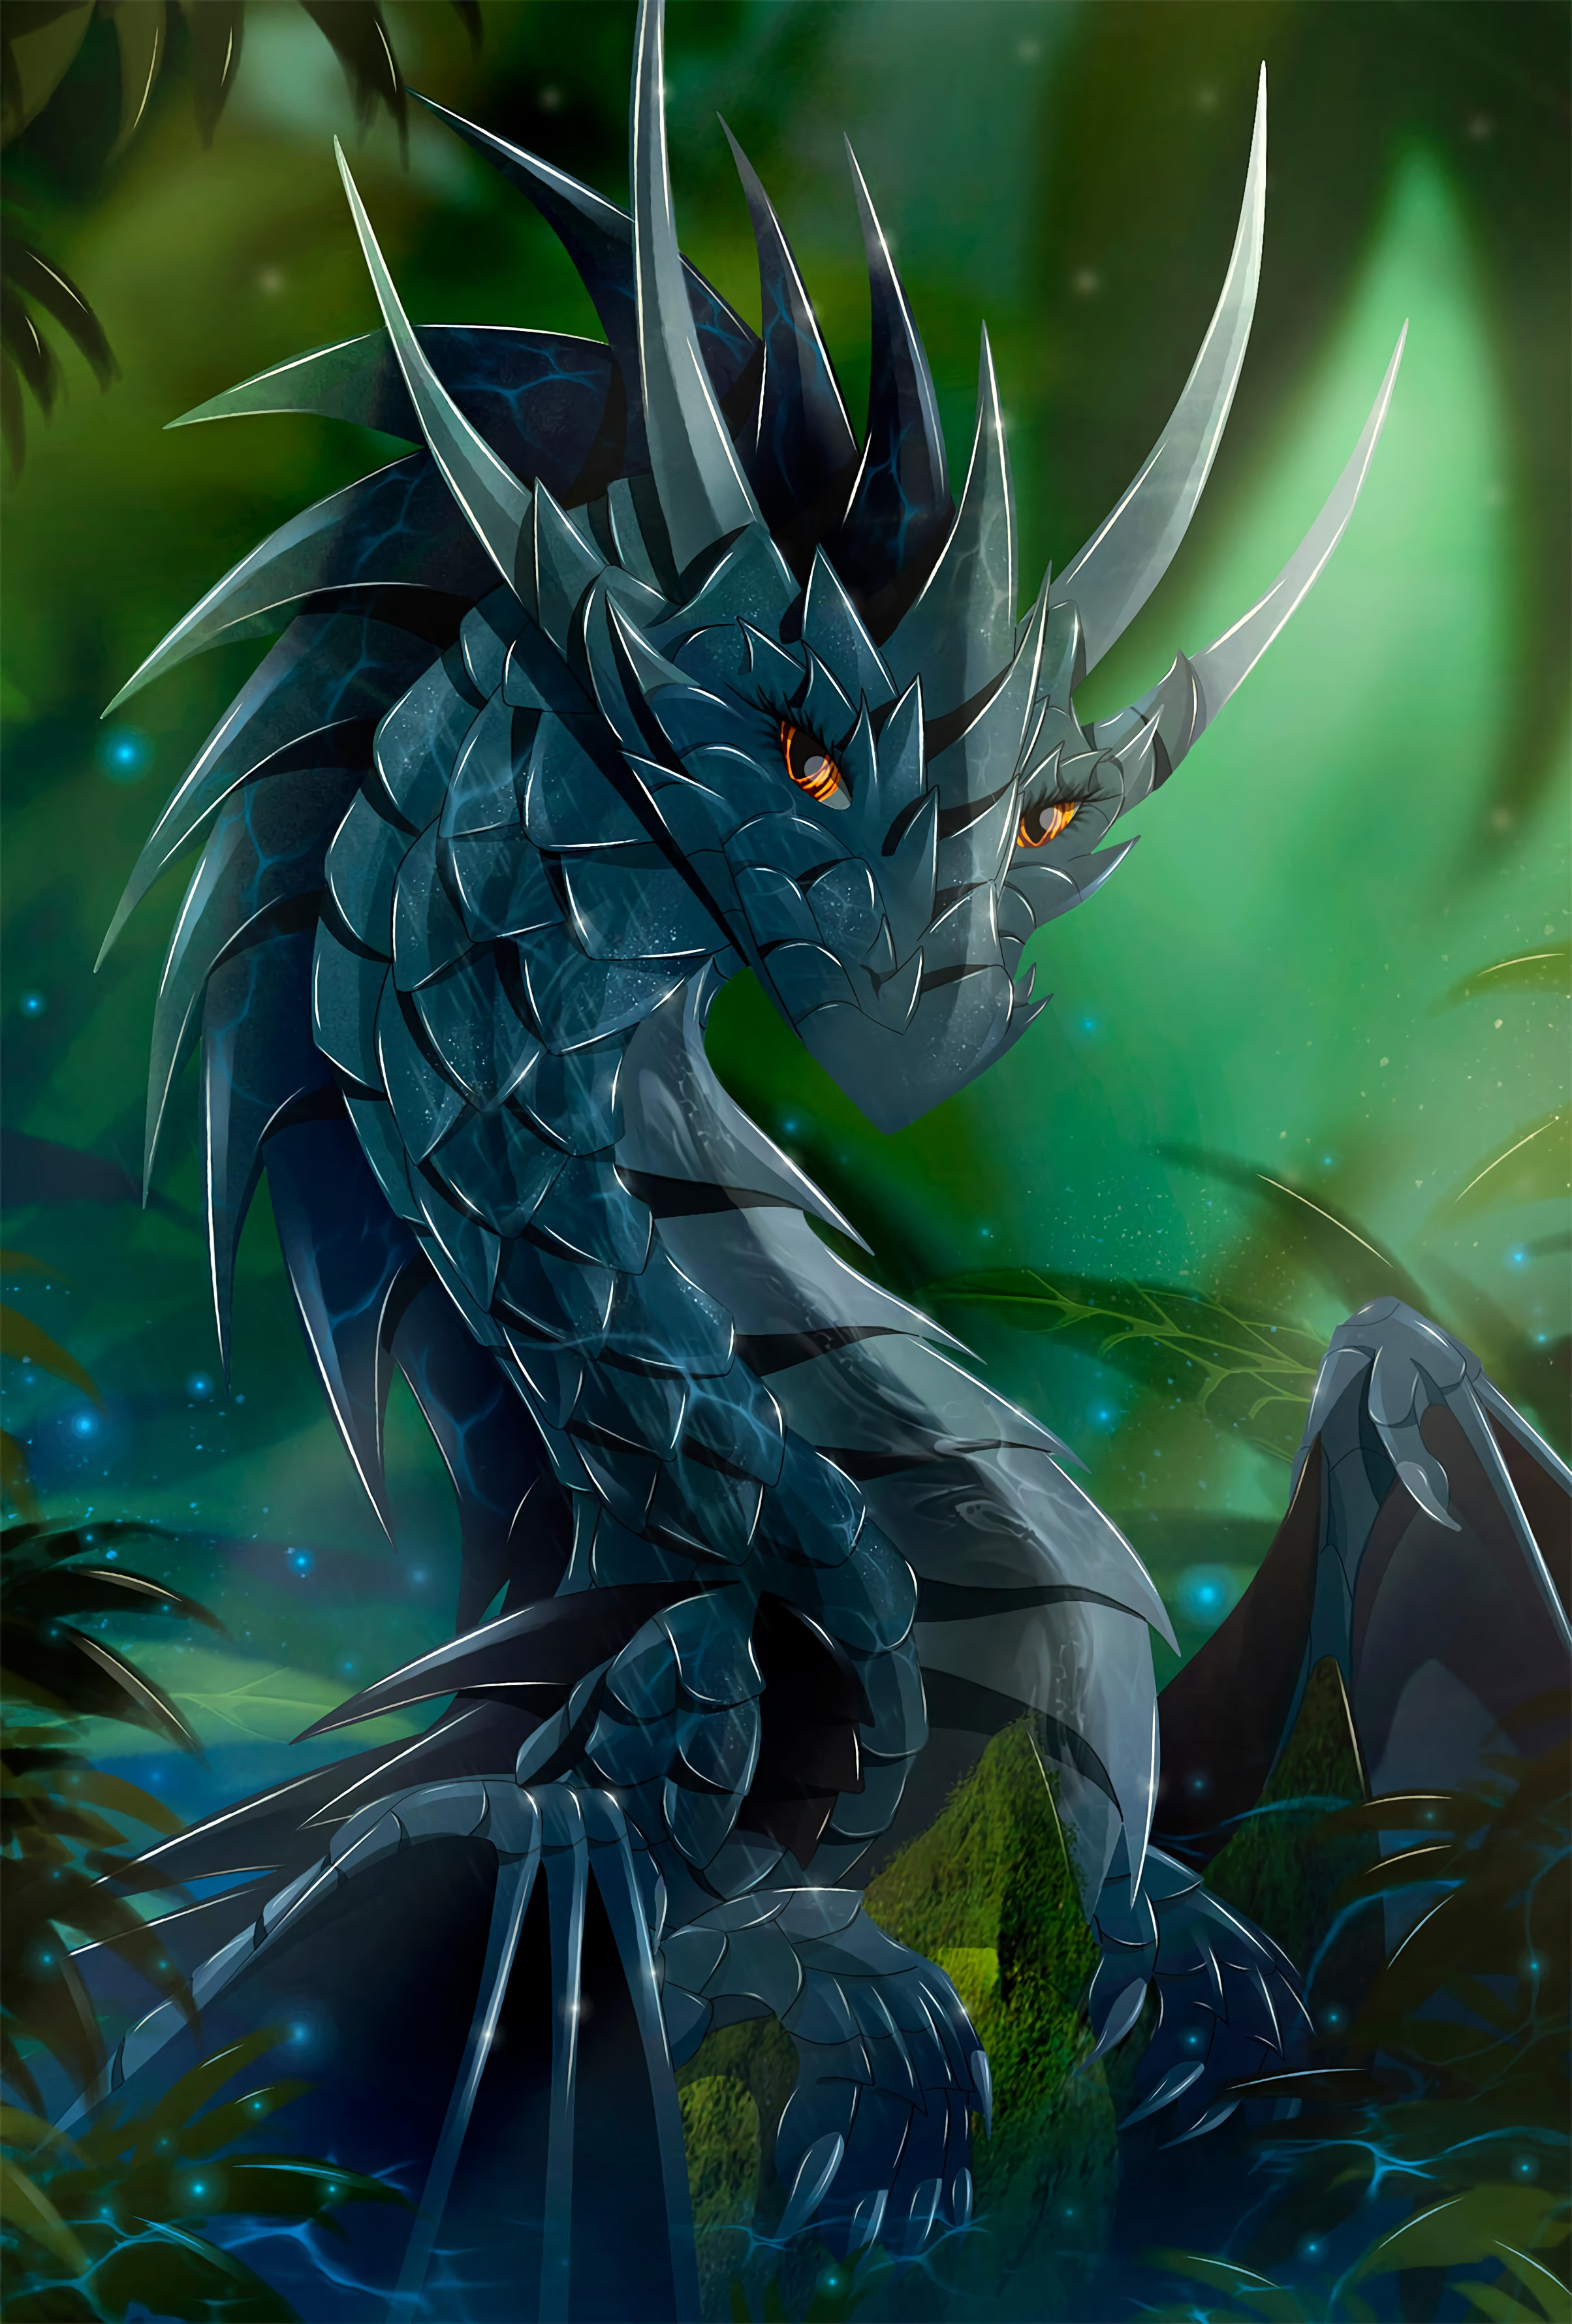 131675 download wallpaper Dragon, Sight, Opinion, Art, Being, Creature, Scales, Scale screensavers and pictures for free